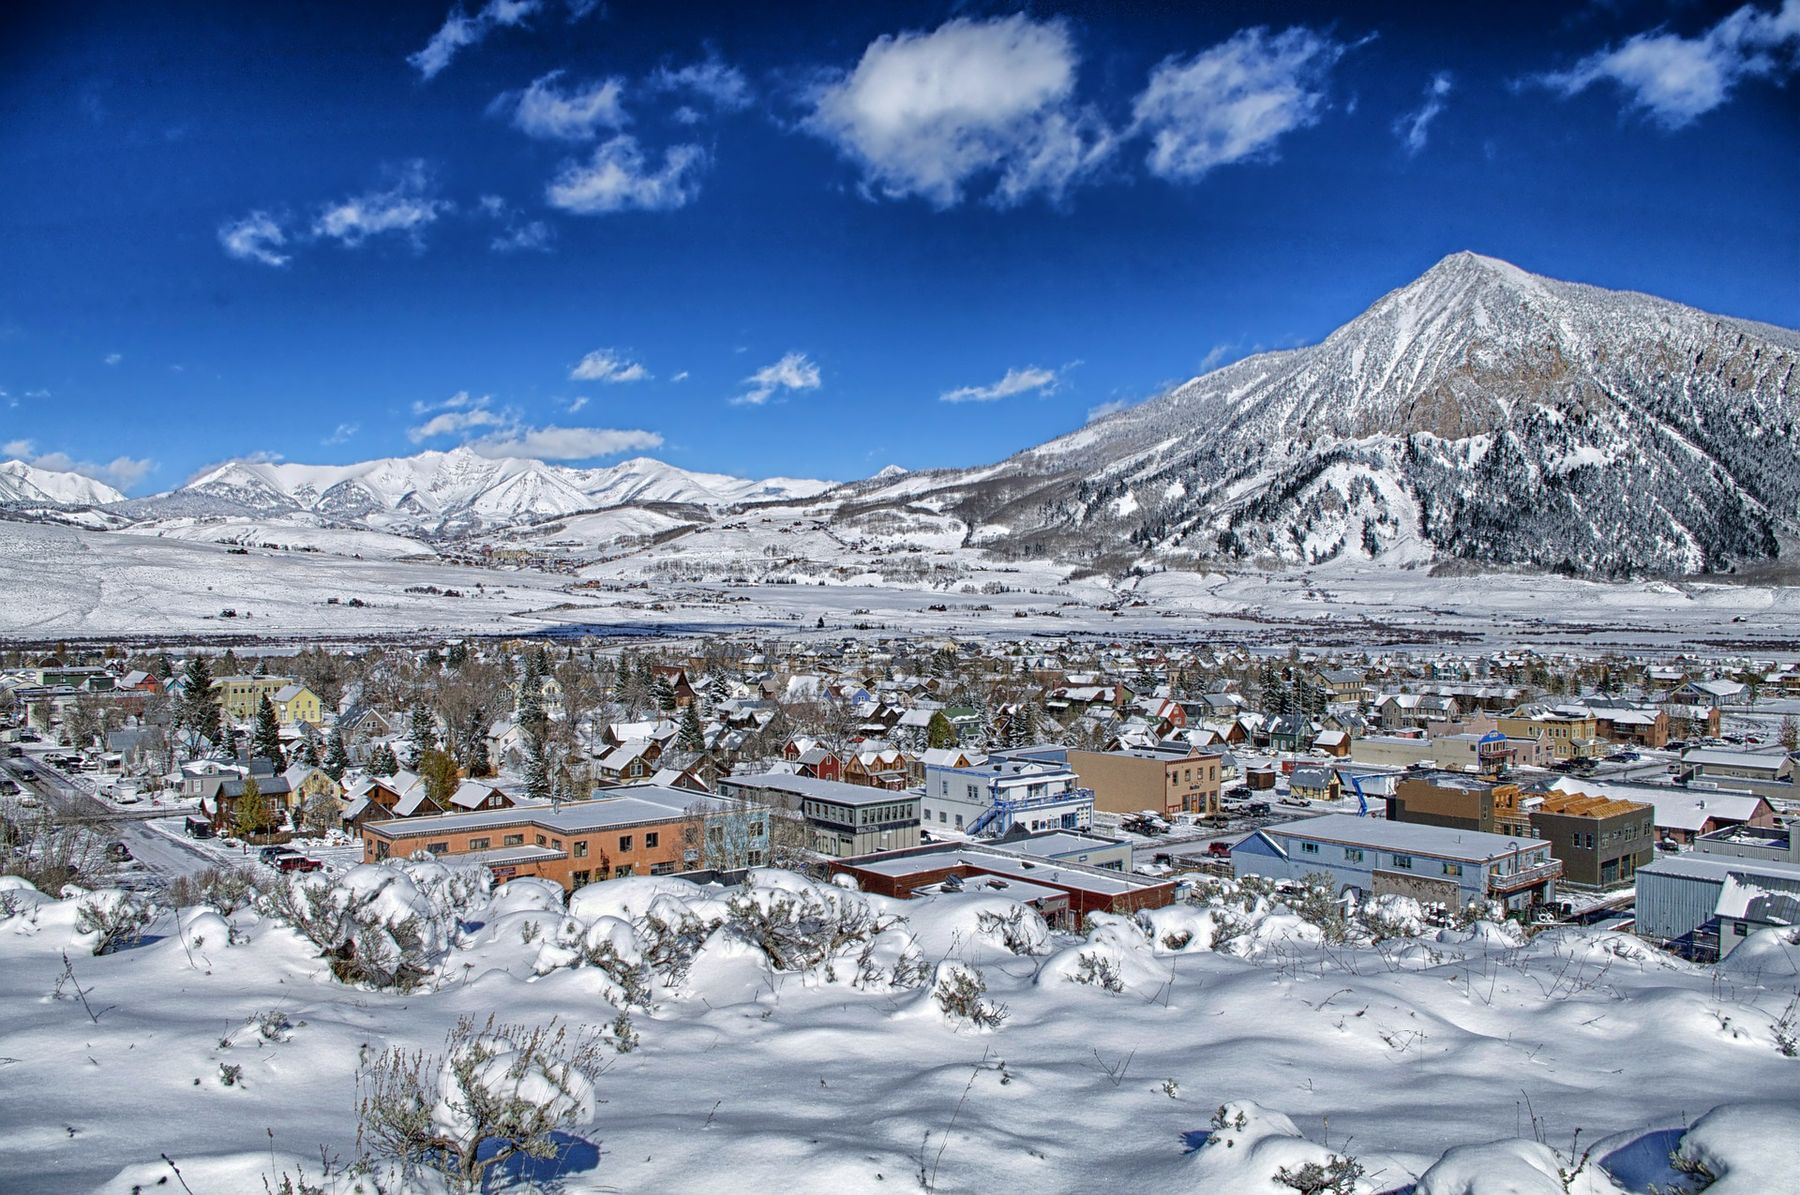 Colorado's Crested Butte town covered in snow with Crested Butte Mountain in the background.